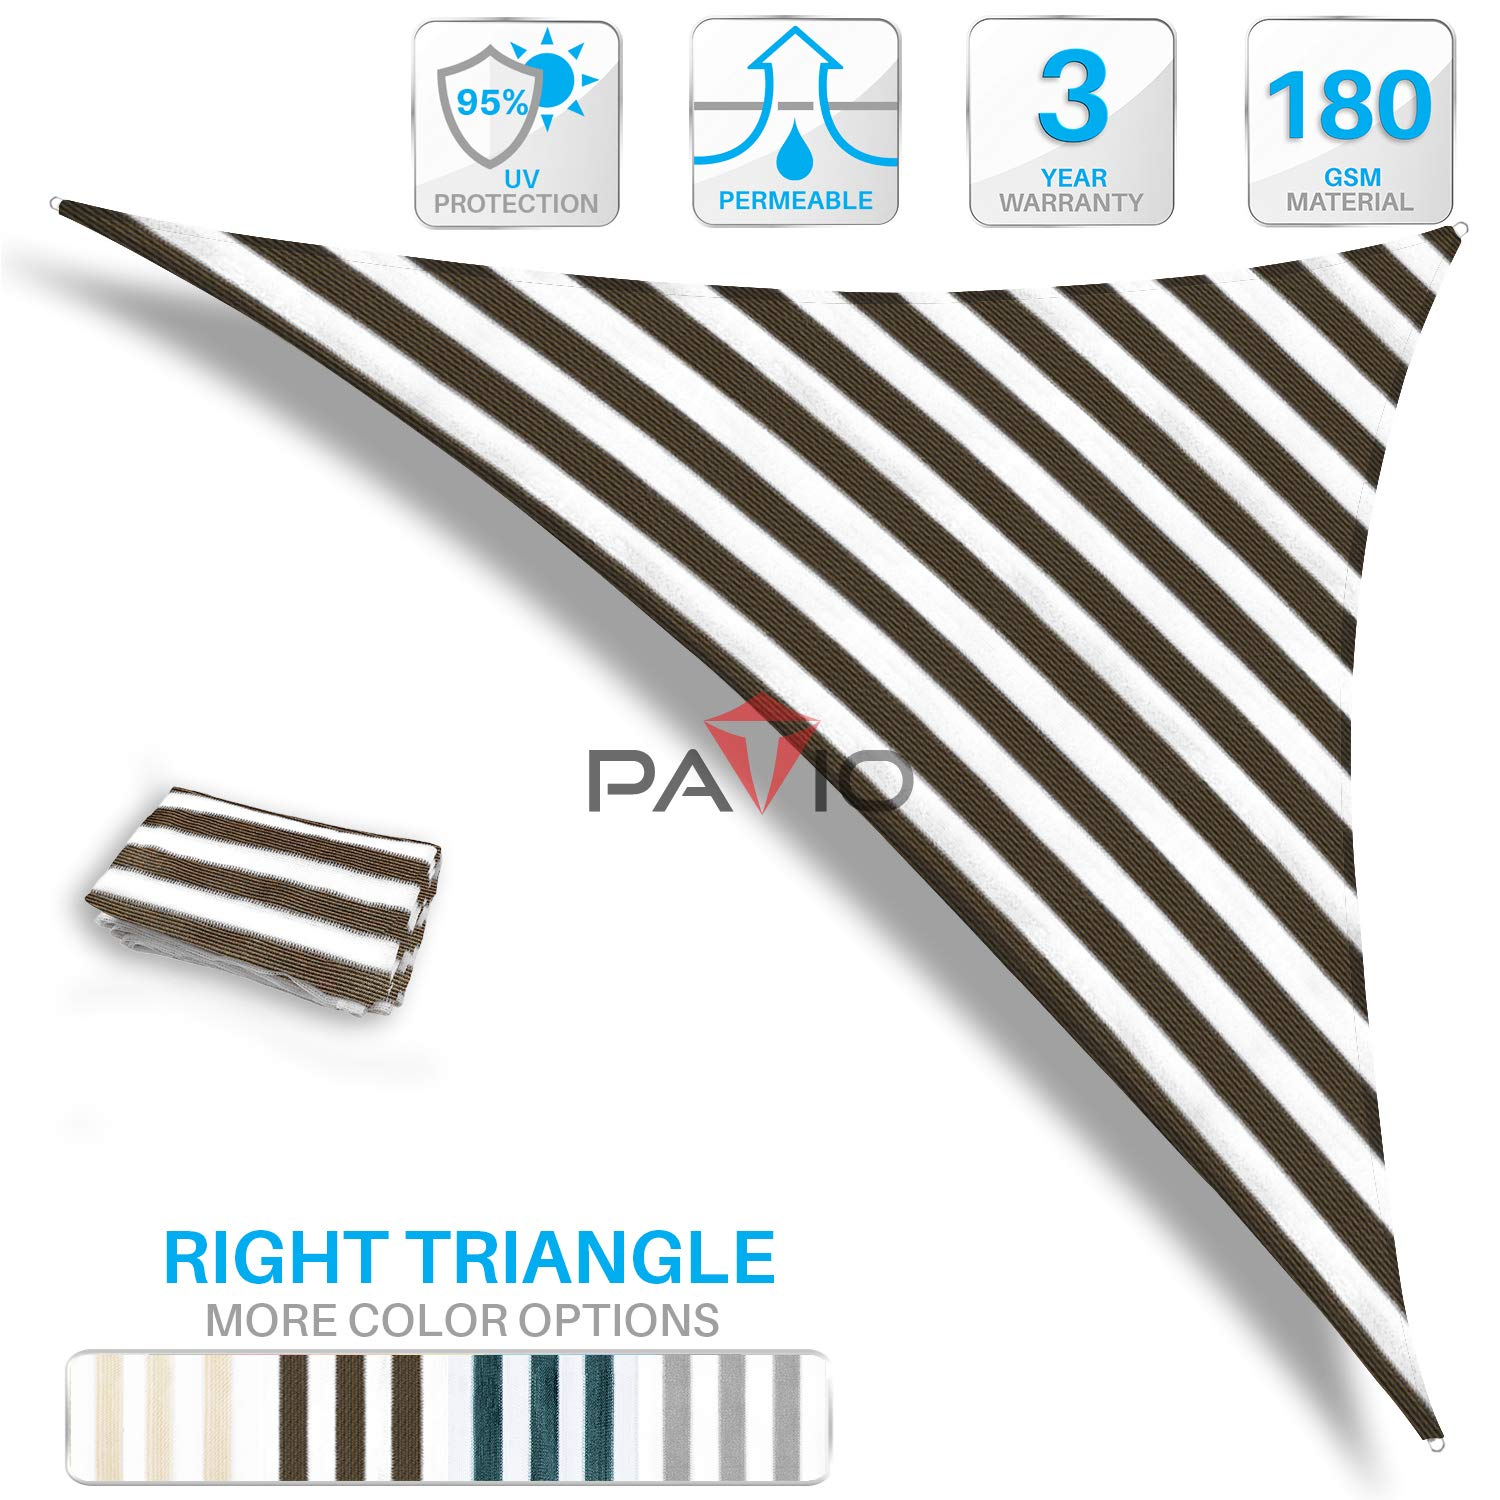 Patio Paradise 10' x 10' x 14.1' Brown & White Stripes Sun Shade Sail Right Triangle Canopy, 180 GSM Permeable Canopy Pergolas Top Cover, Permeable UV Block Fabric Durable Outdoor